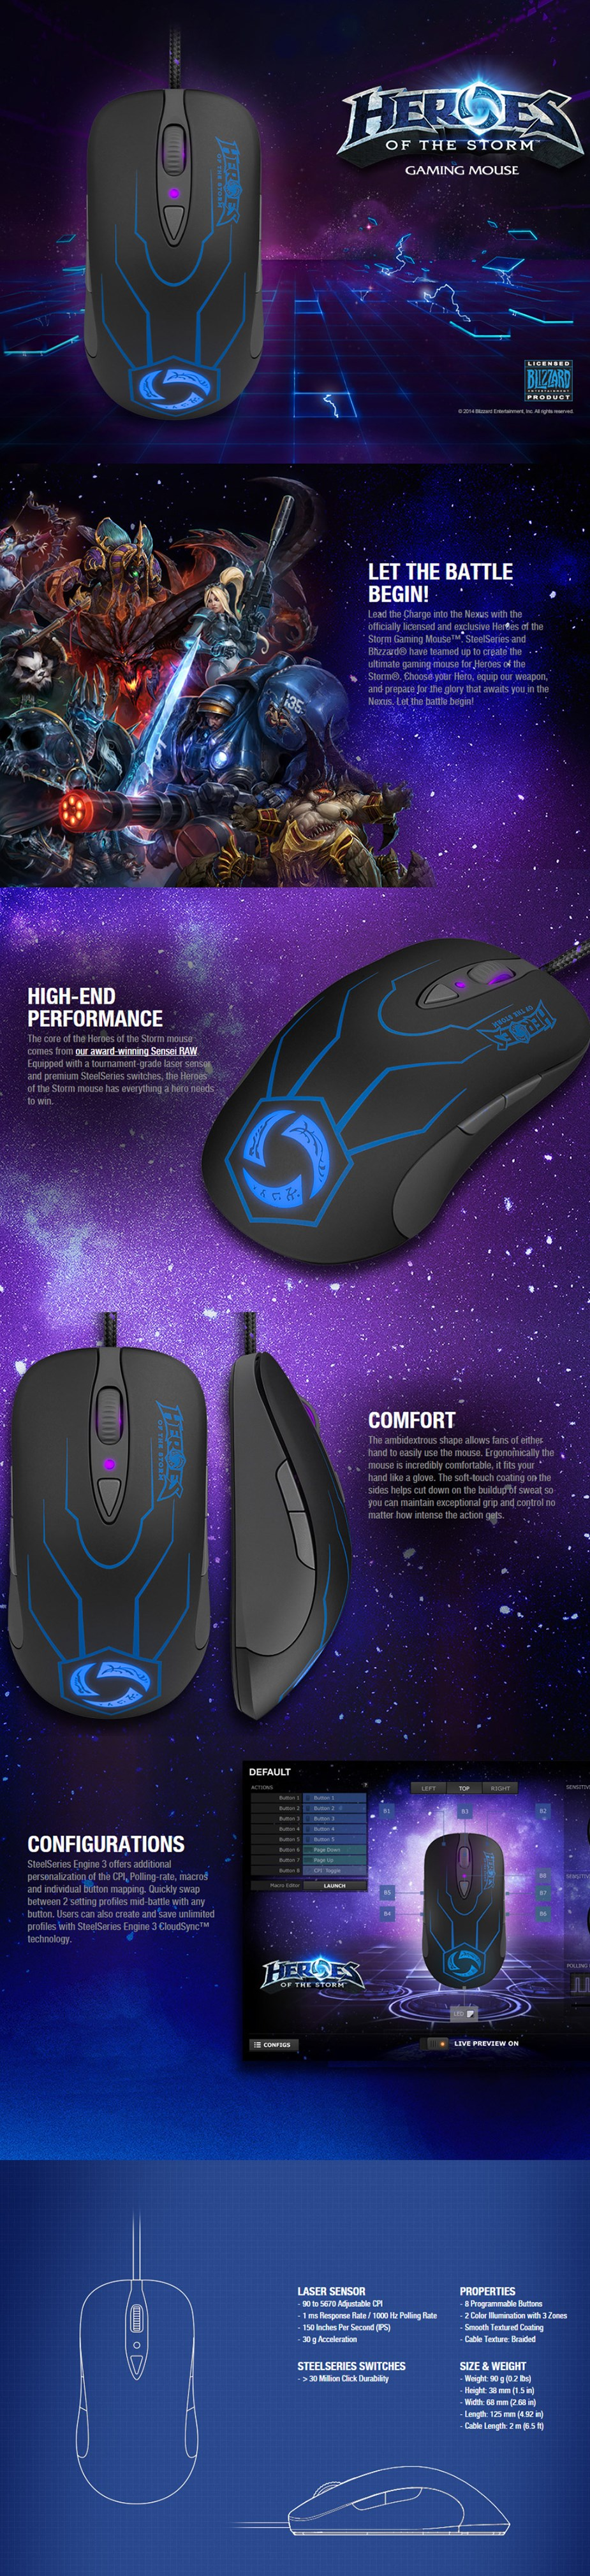 SteelSeries Sensei Raw Heroes of the Storm Gaming Mouse - Desktop Overview 1